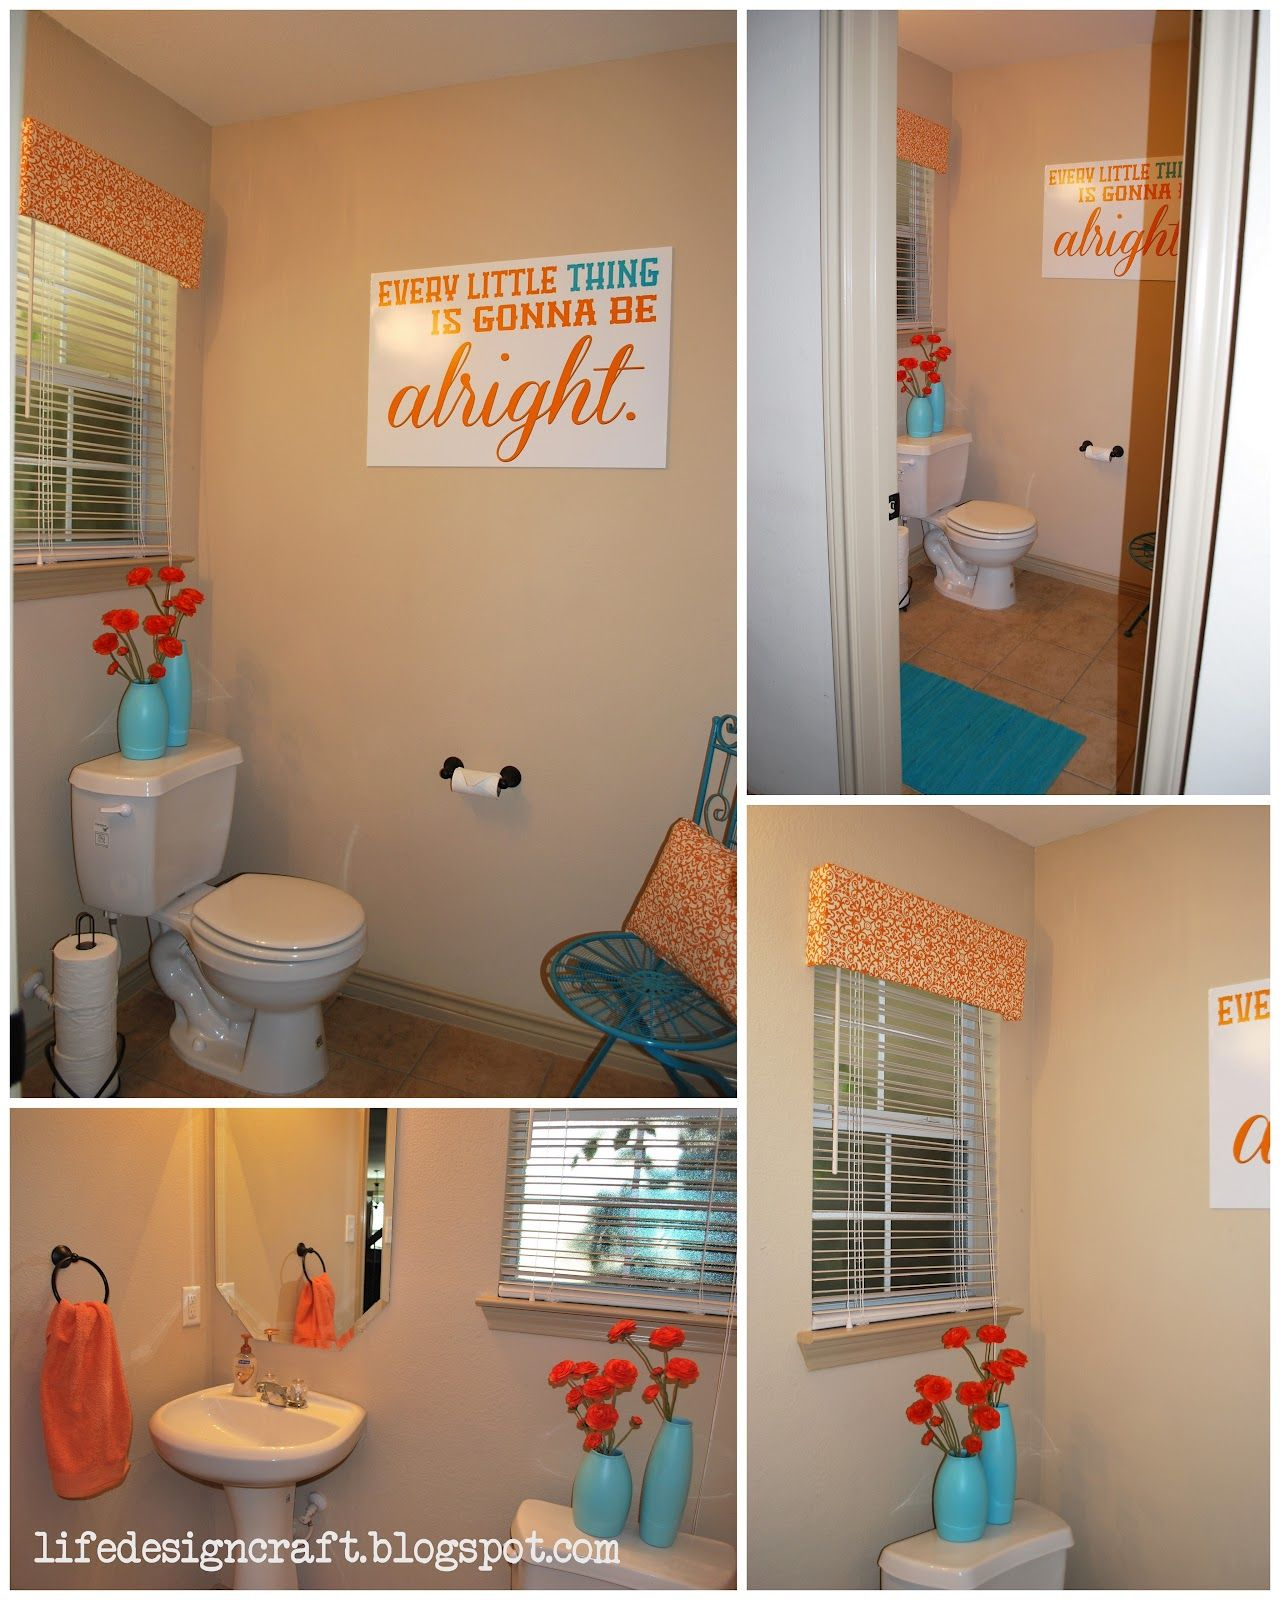 Kids Ocean Bathroom Decor Orange And Turquoise Bathroom With Free Print Quotevery